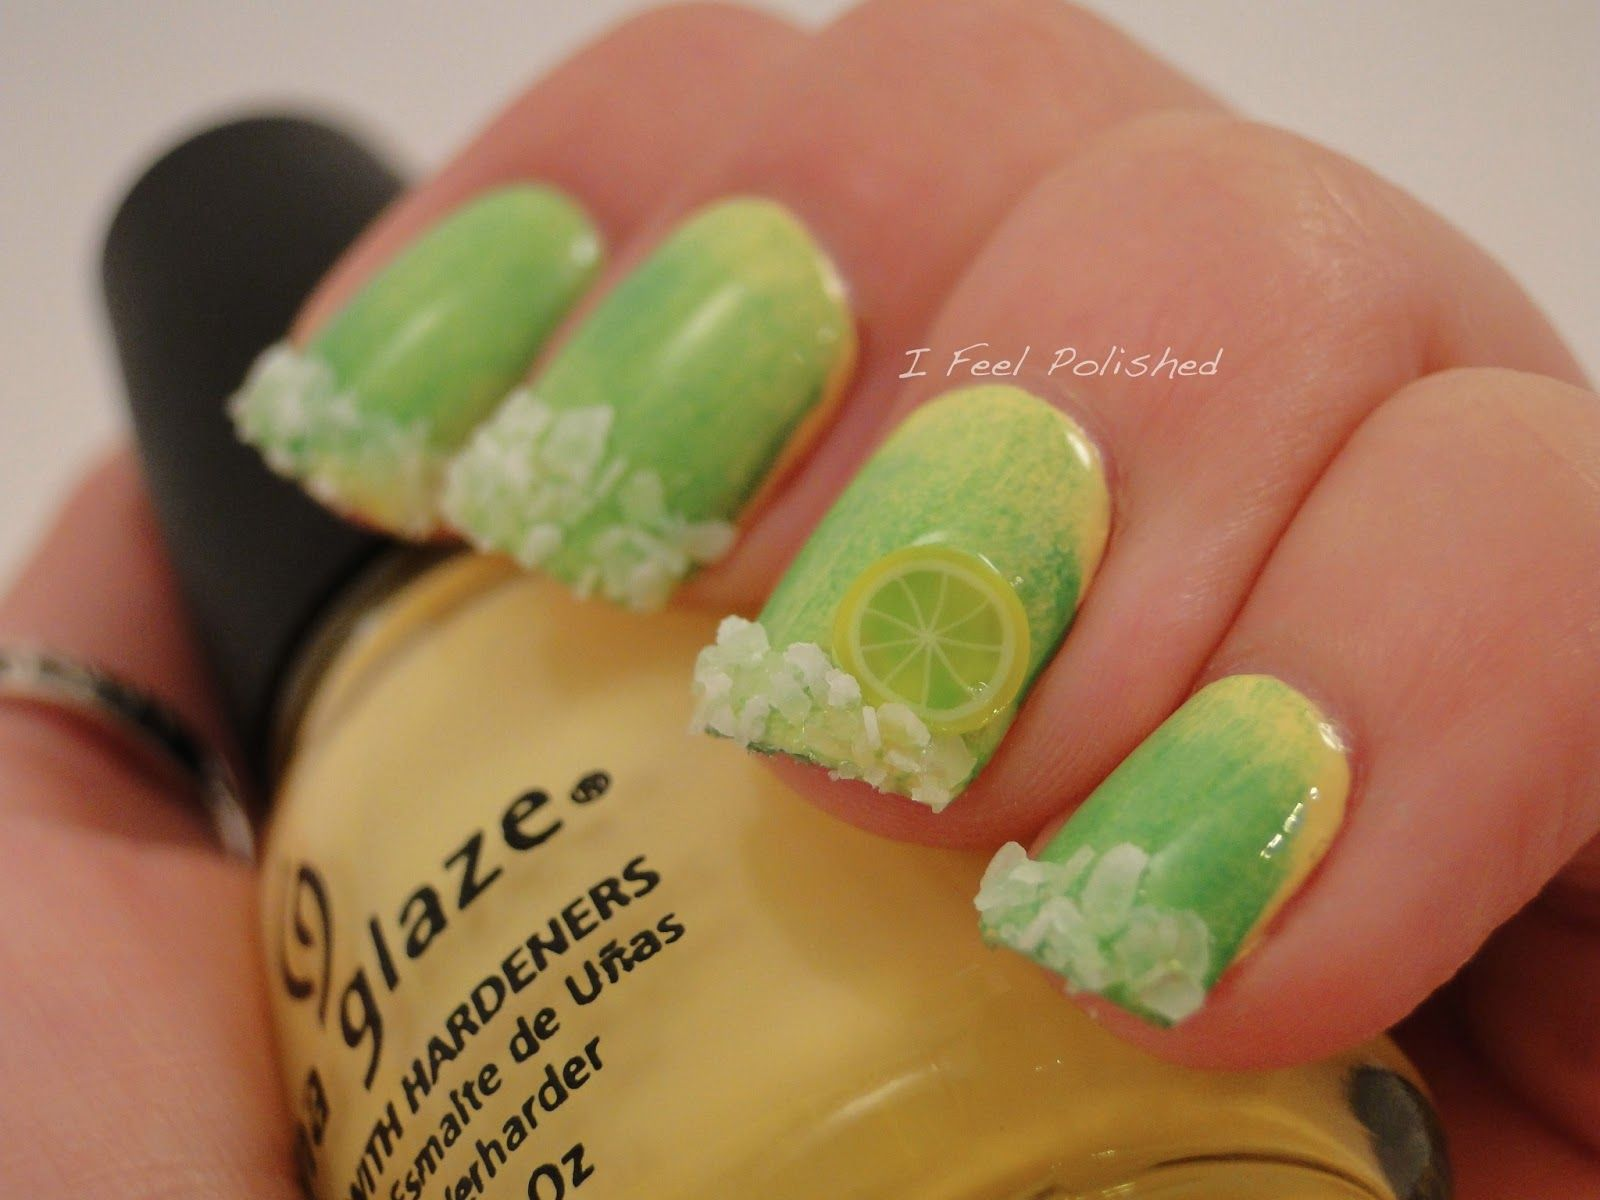 Margarita Nails - The lemon or lime is fimo clay. The salt is ...